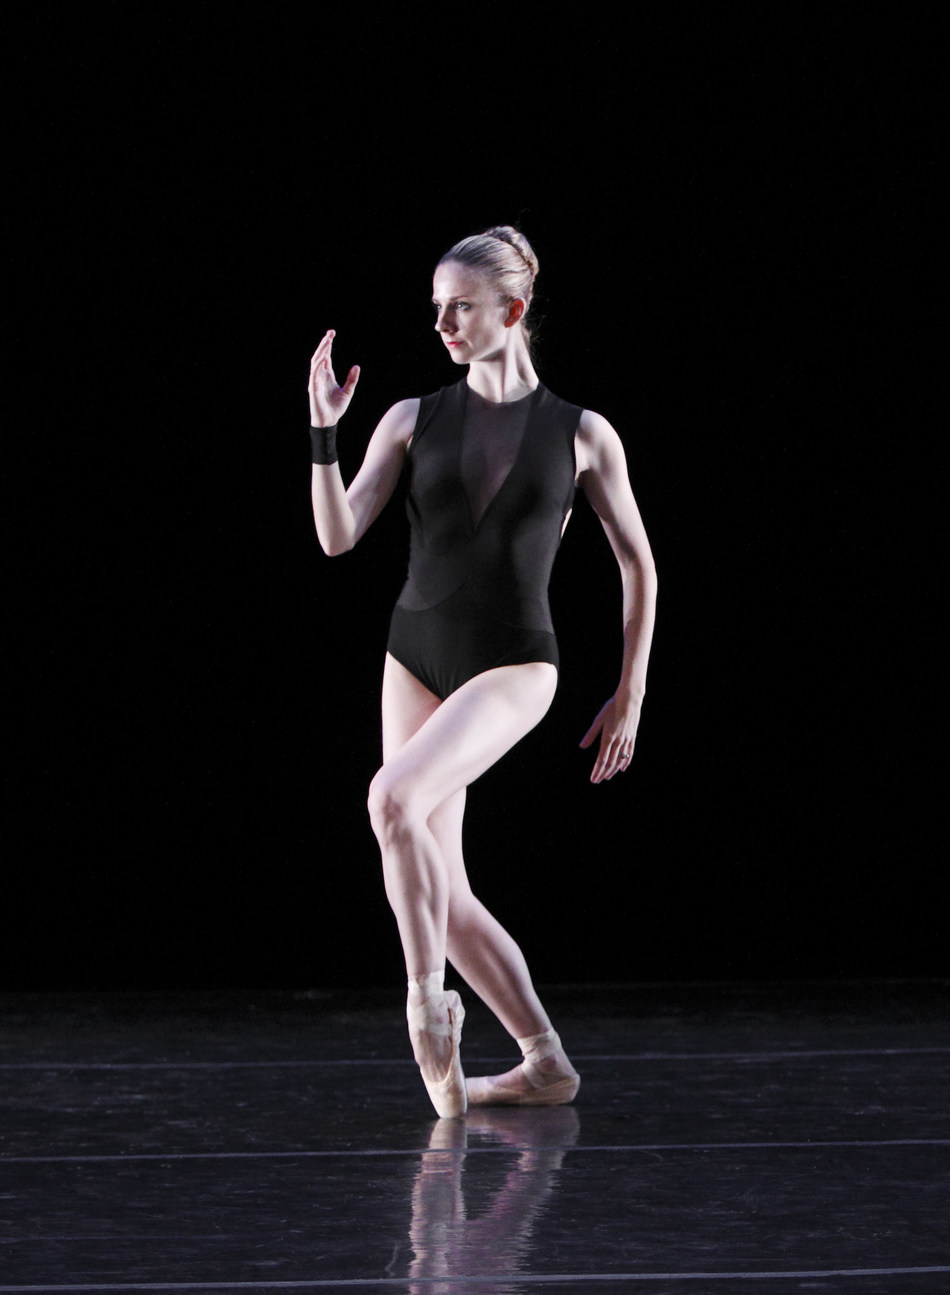 Michele Wiles performing BalletNext's La Folia by Mauro Bigonzetti, Photo Gene Schiavonne